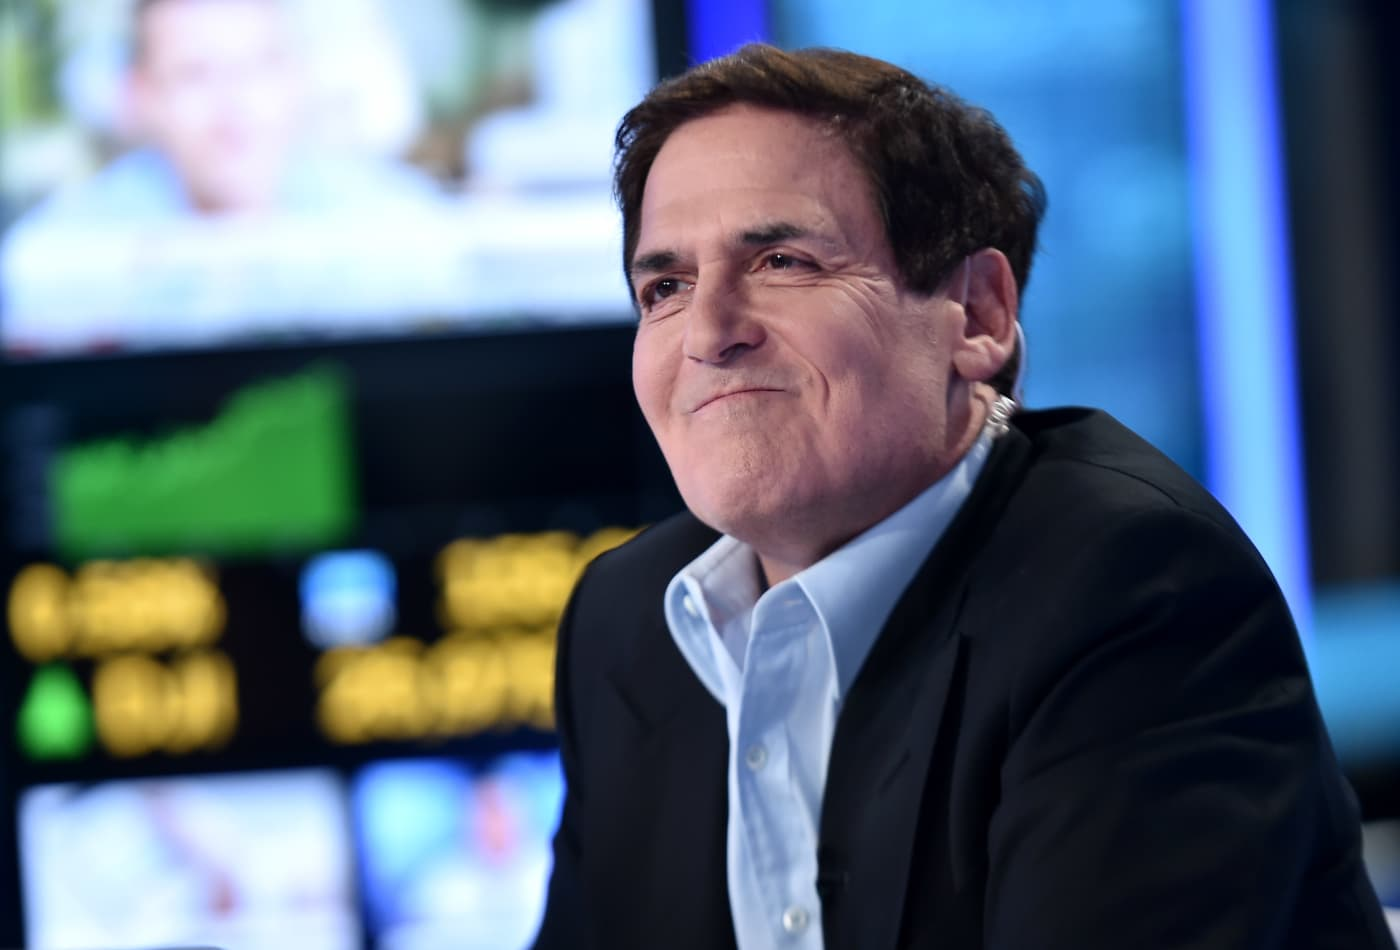 Mark Cuban on blockchain: 'It's like the early days of the internet' when 'a lot of people thought we were crazy'